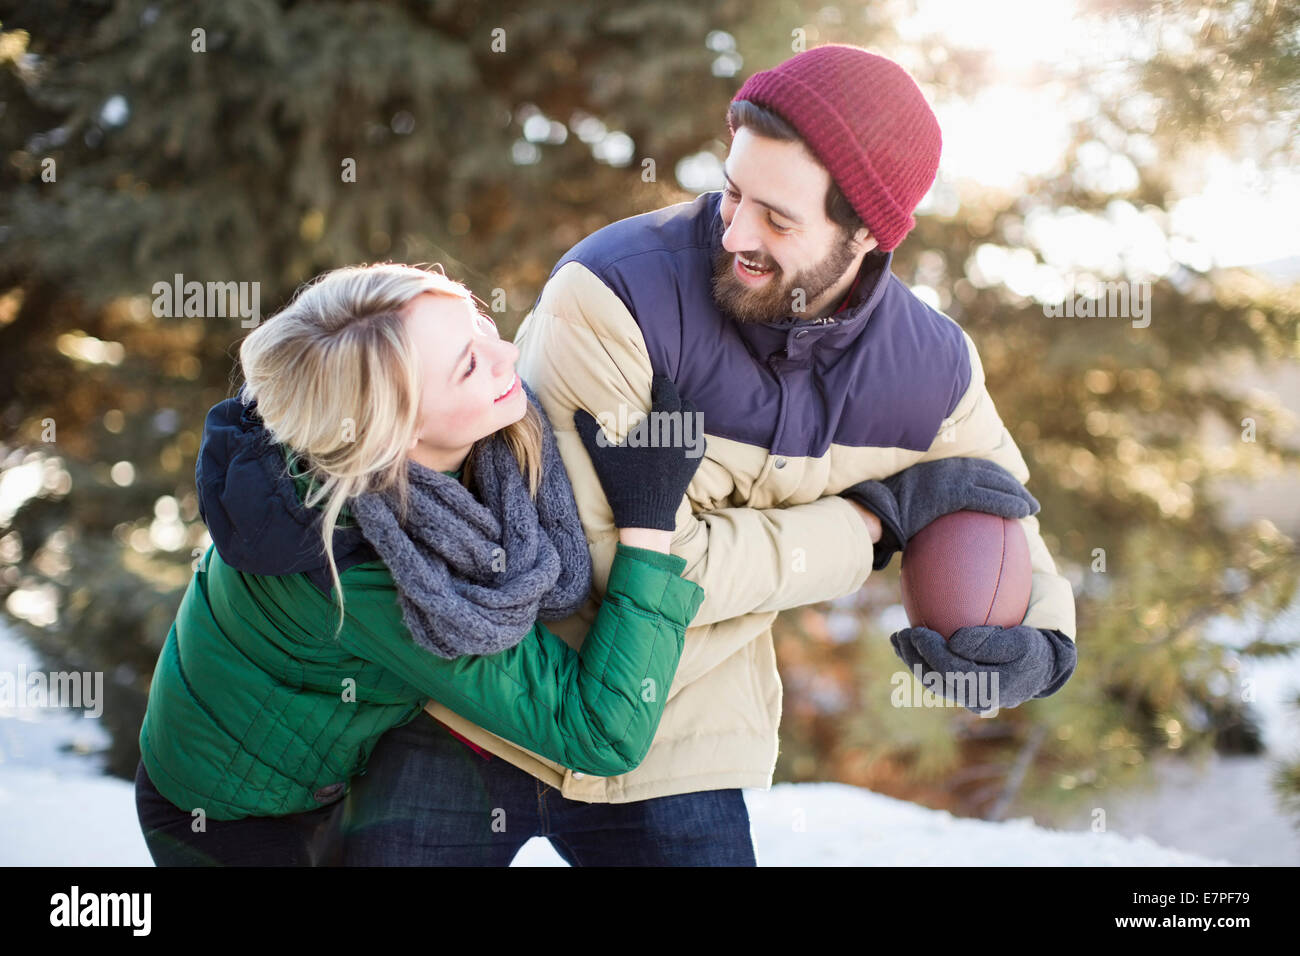 USA, Utah, Salt Lake City, Couple playing American football - Stock Image